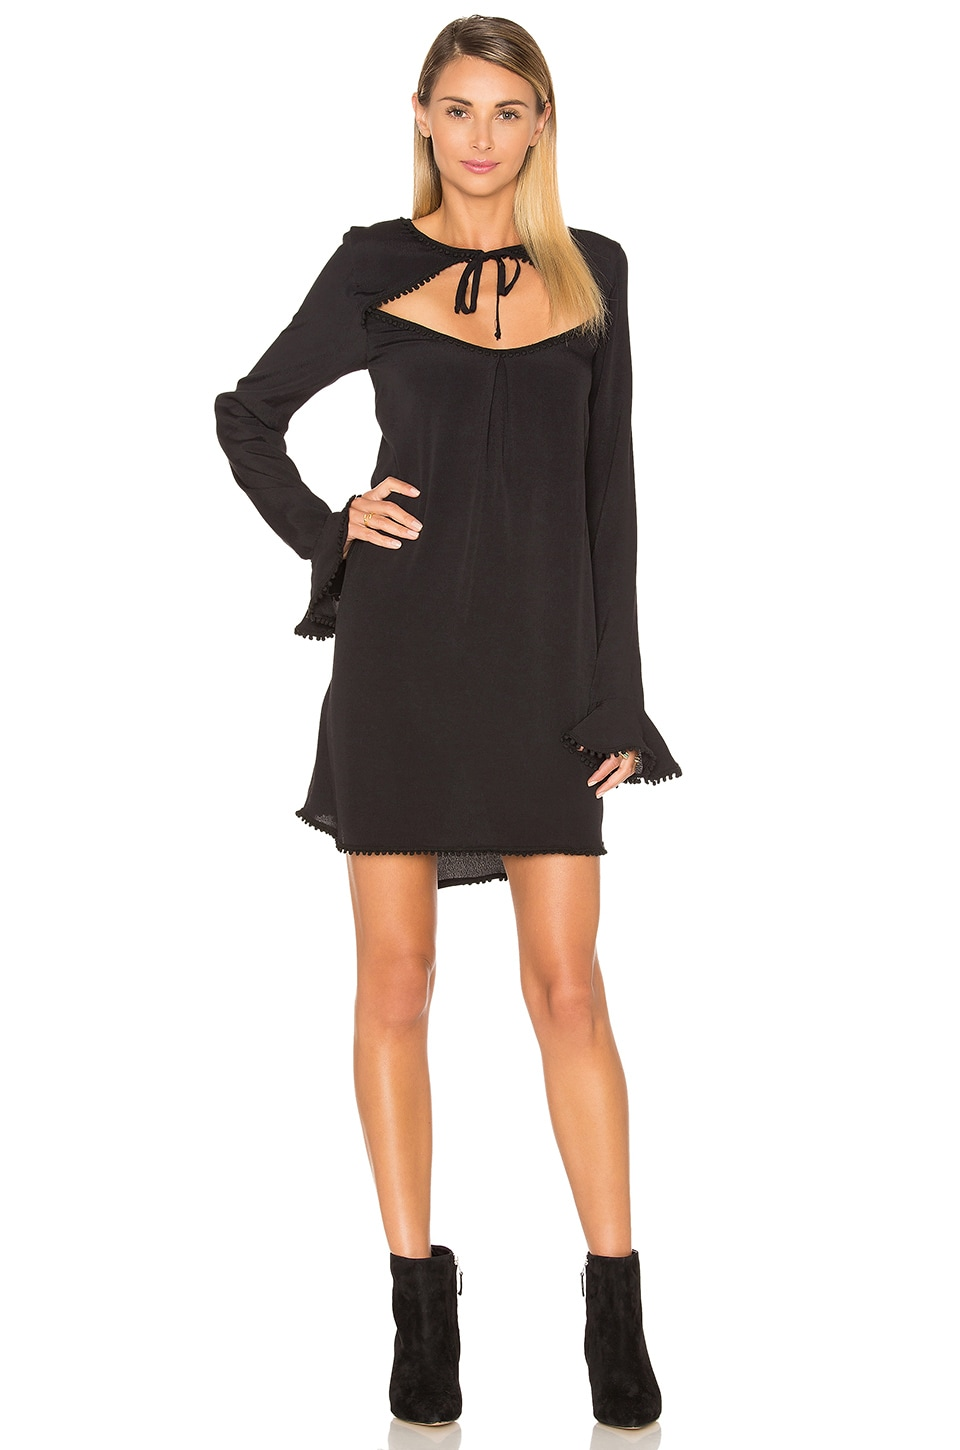 For Love & Lemons Josephina Swing Dress in Black